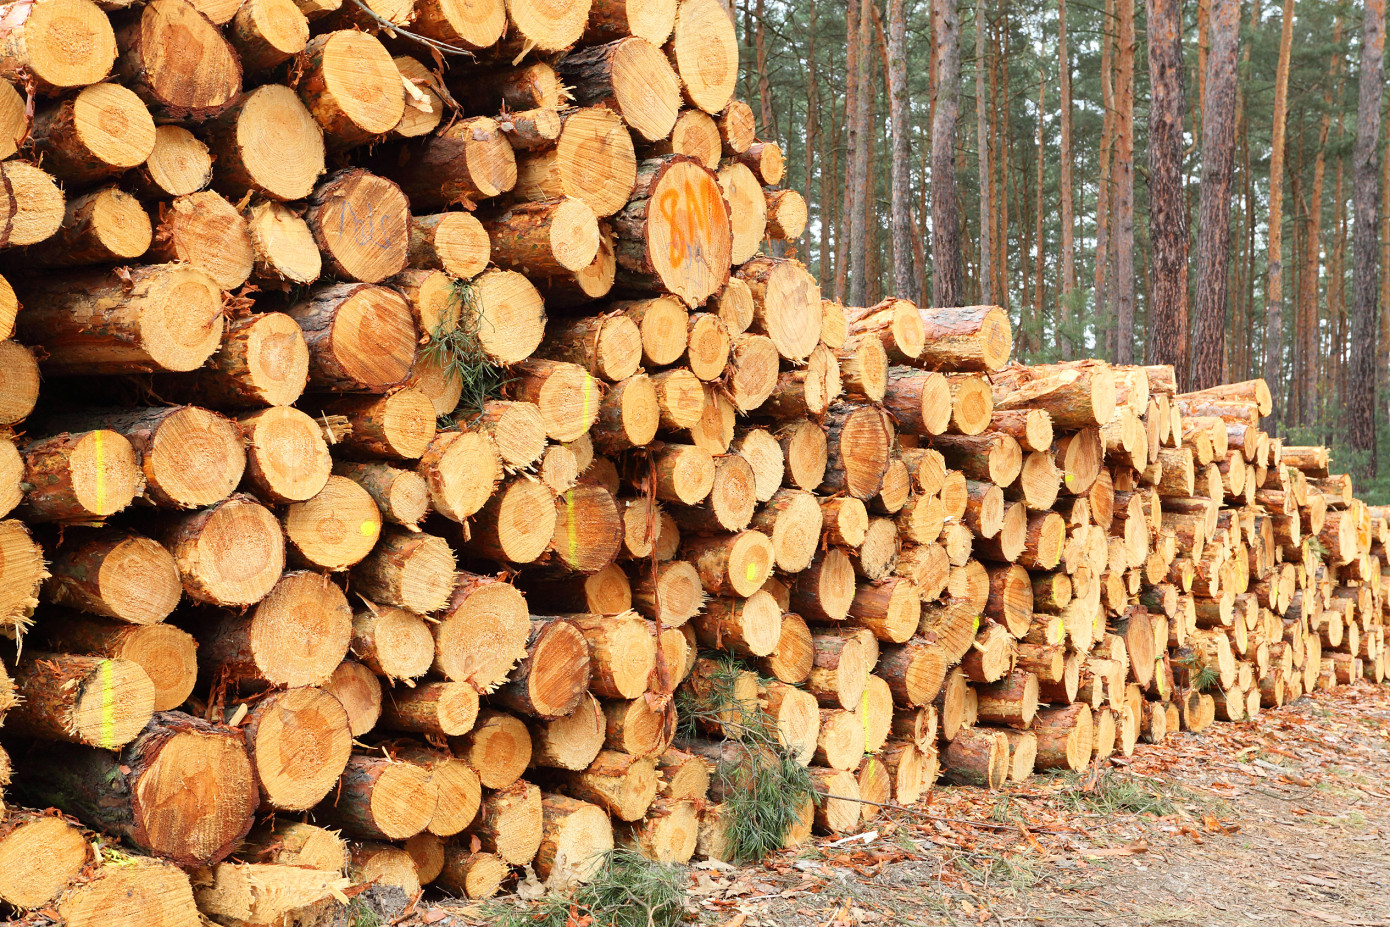 WRQ: China increased log imports from New Zealand and Europe